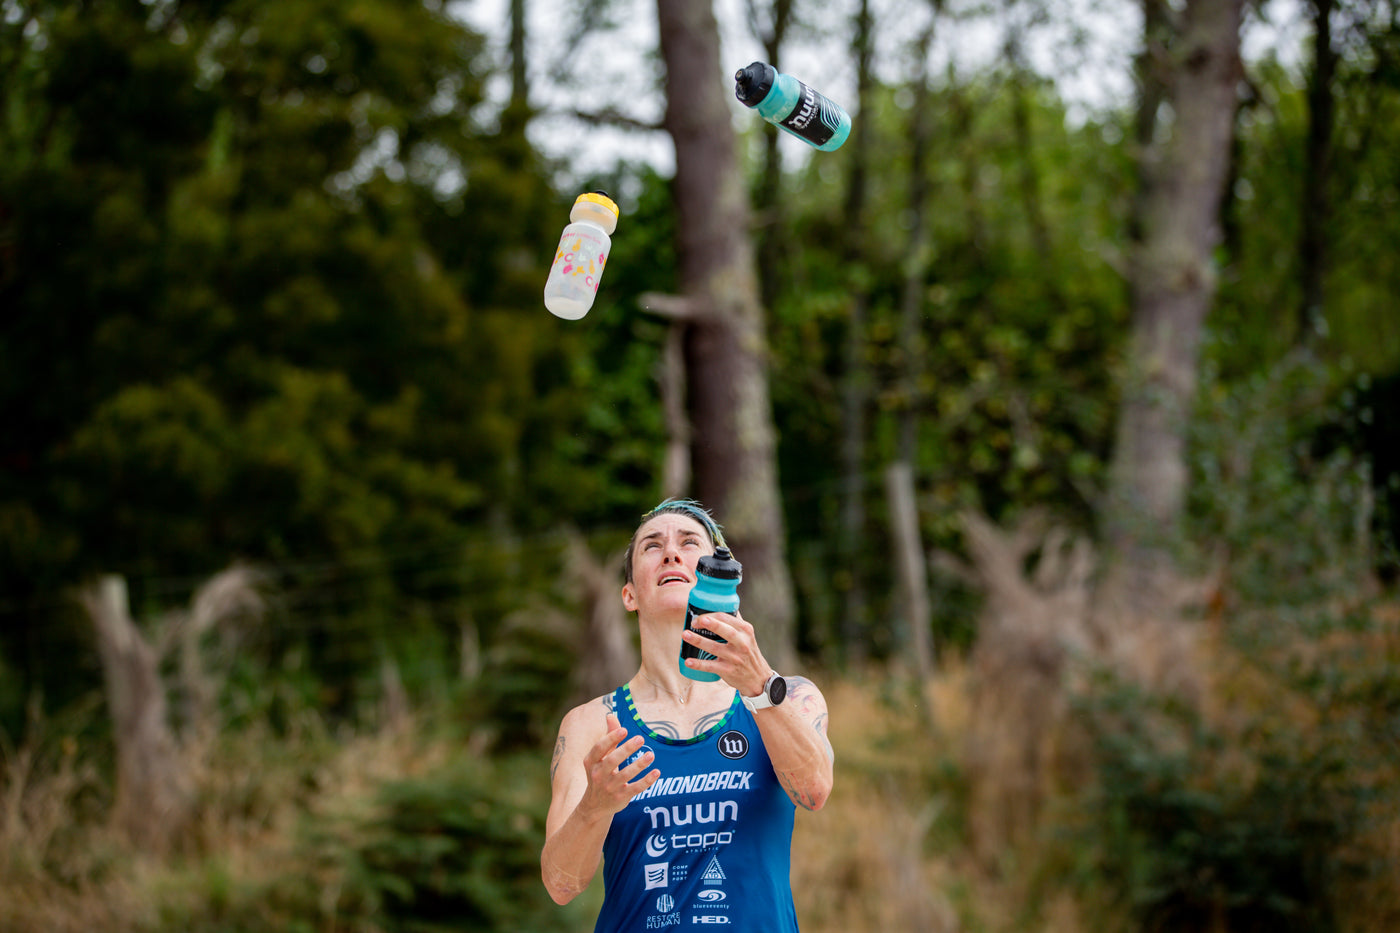 Rachel Mcbride juggling three nuun water bottles